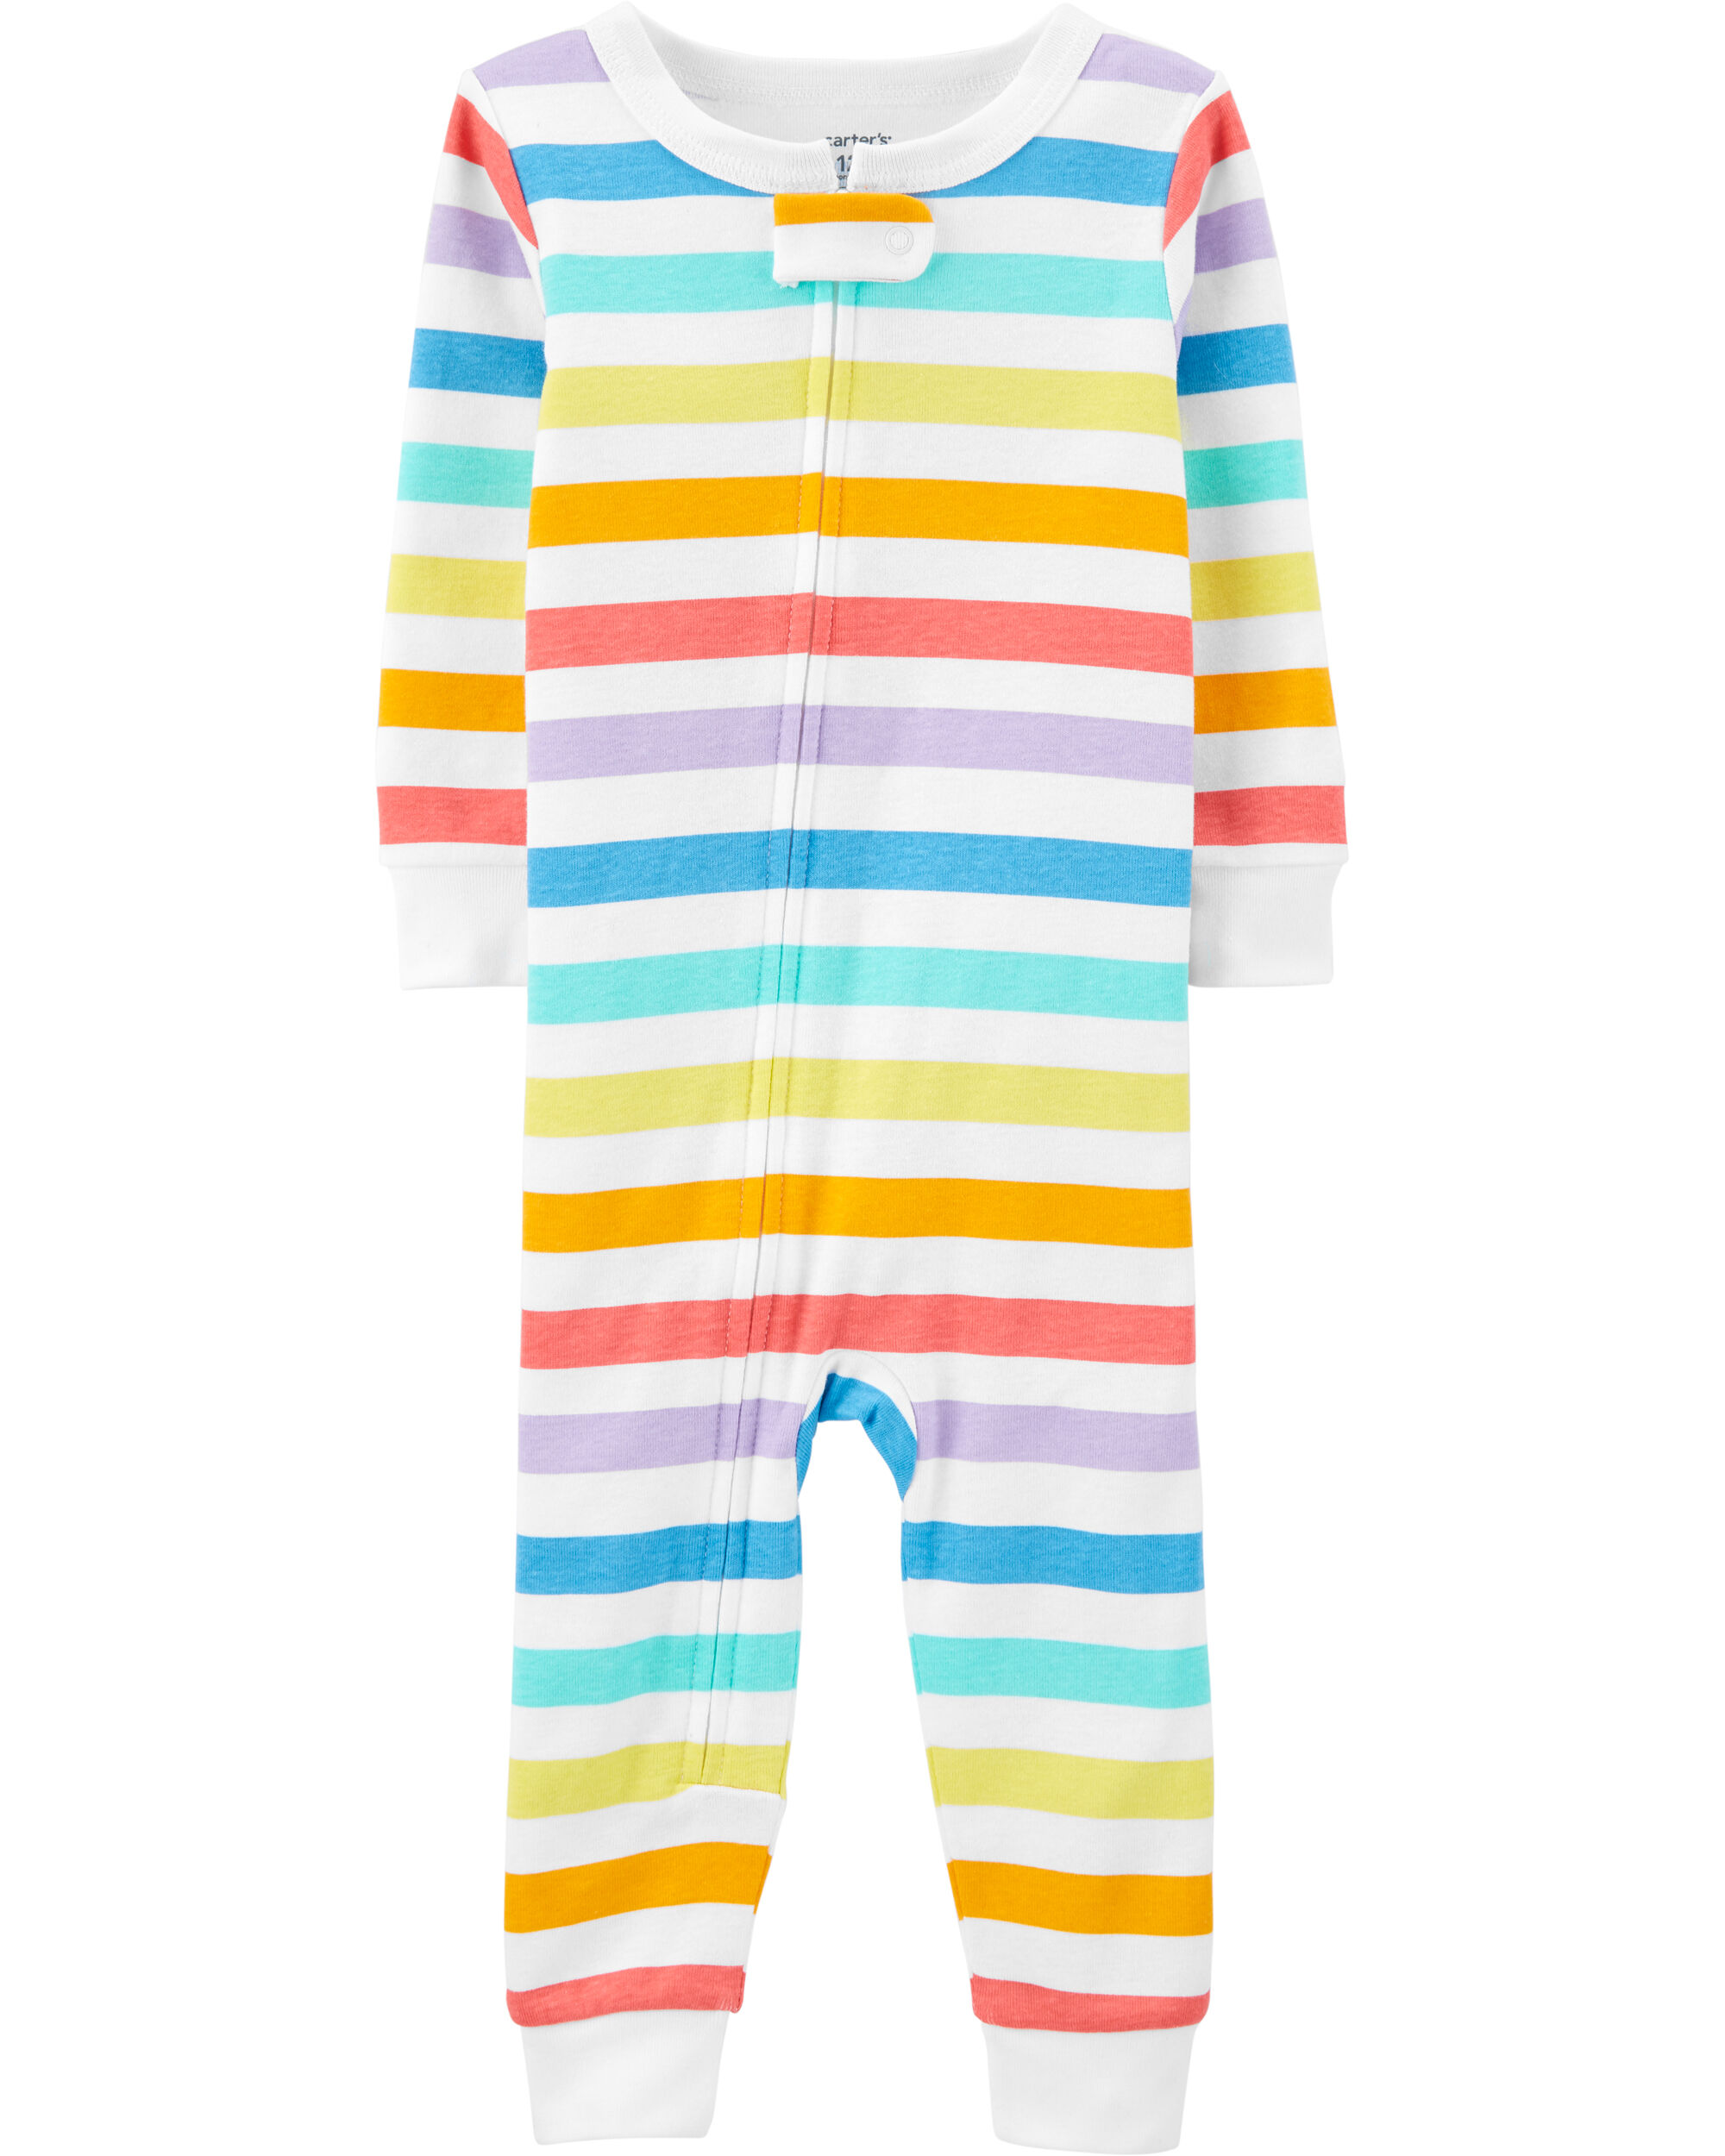 1-Piece Striped Snug Fit Cotton Footless PJs